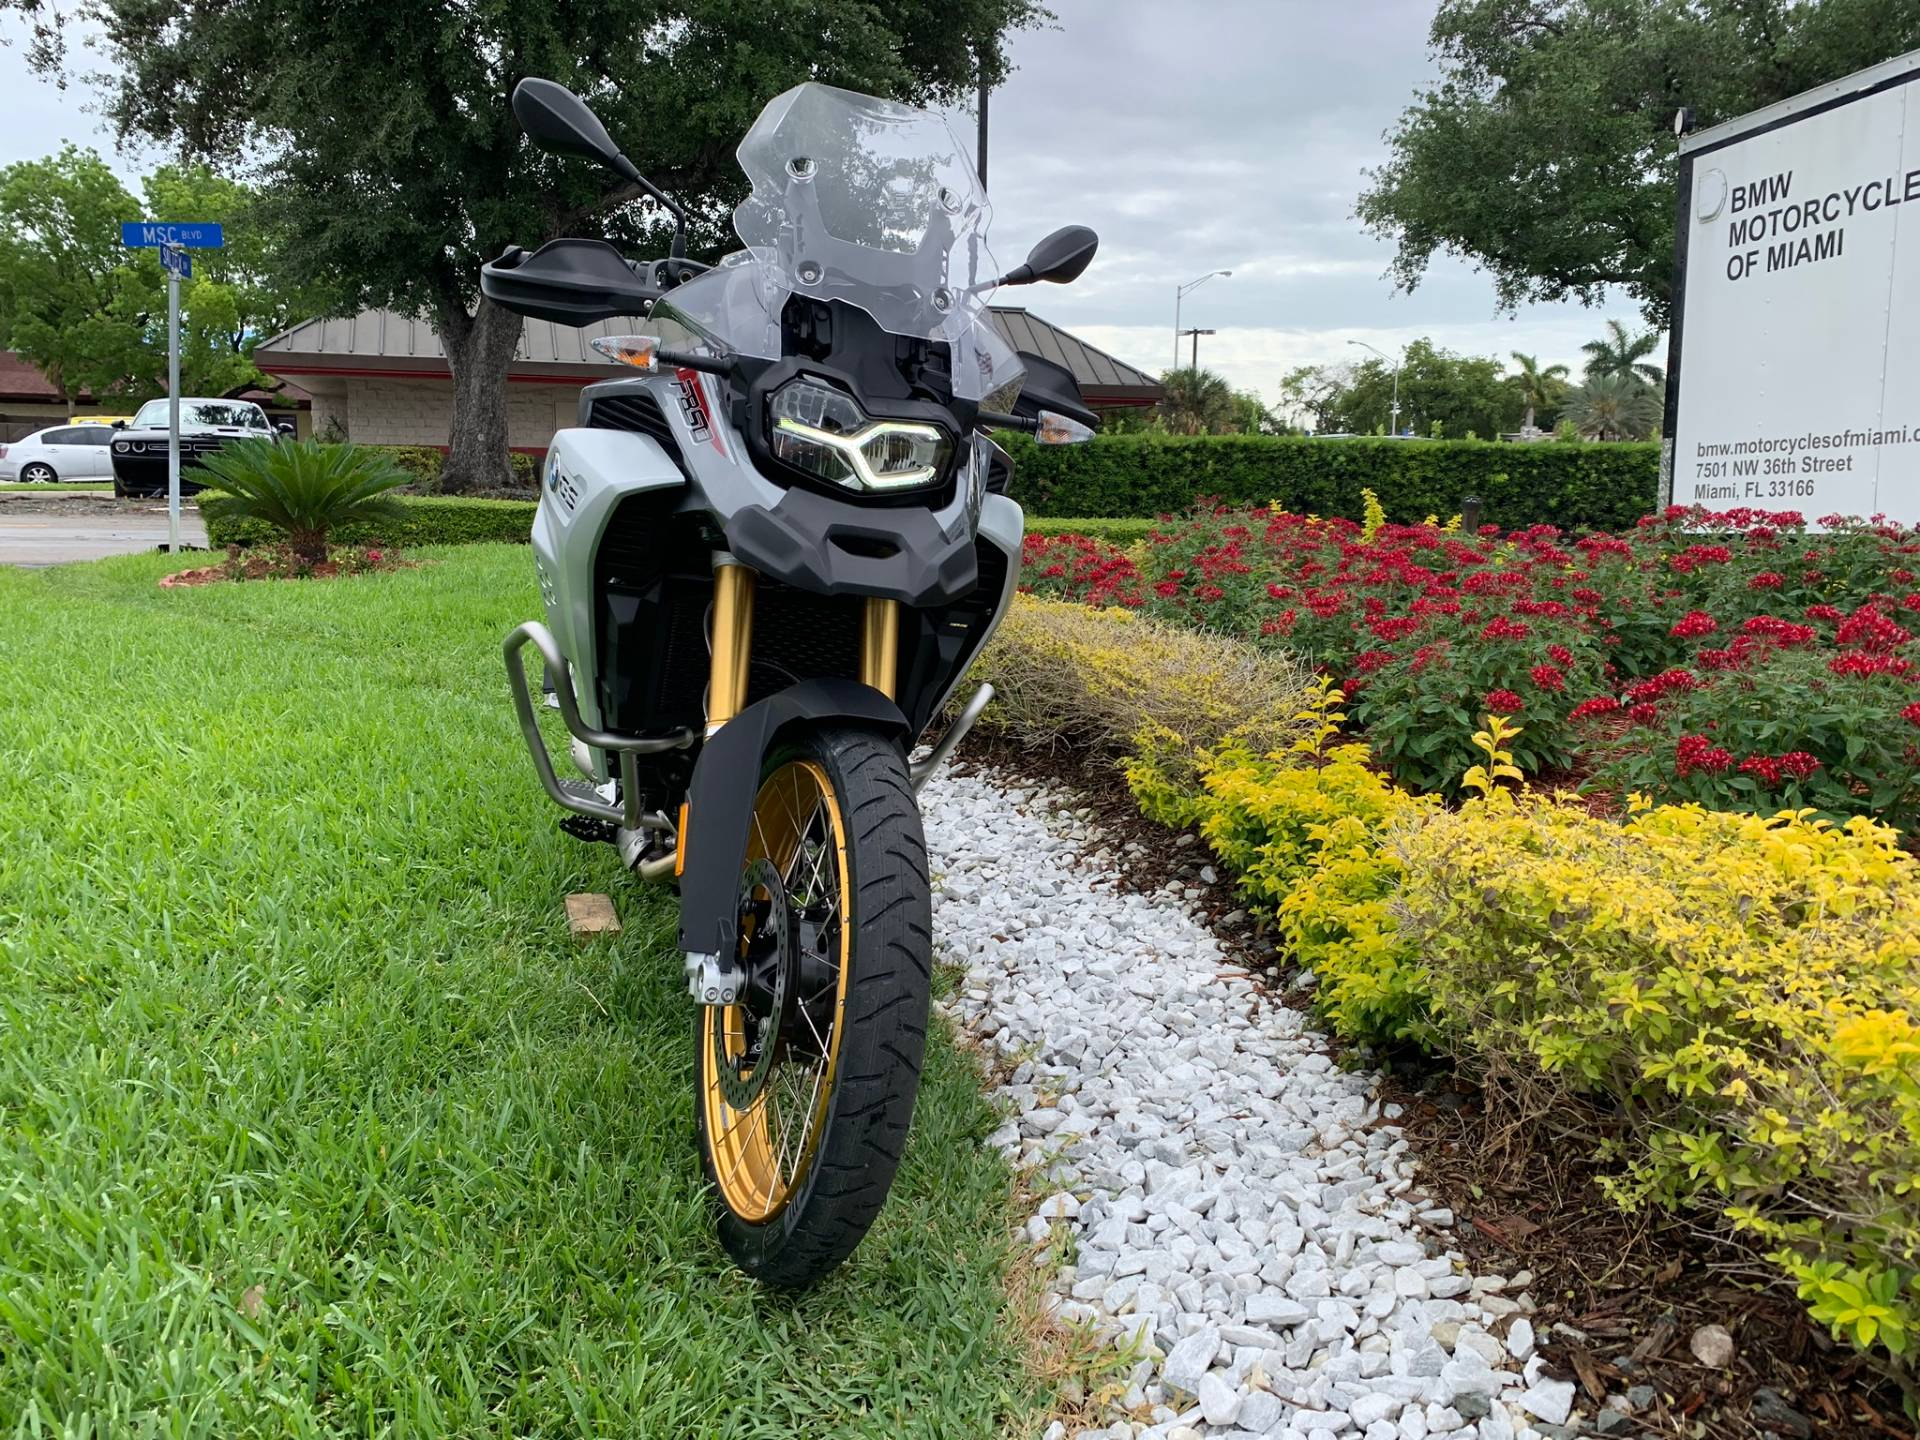 New 2019 BMW F 850 GSA for sale, BMW F 850GSA for sale, BMW Motorcycle F850GSA, new BMW 850 Adventure, Adventure. BMW Motorcycles of Miami, Motorcycles of Miami, Motorcycles Miami, New Motorcycles, Used Motorcycles, pre-owned. #BMWMotorcyclesOfMiami #MotorcyclesOfMiami #MotorcyclesMiami - Photo 32